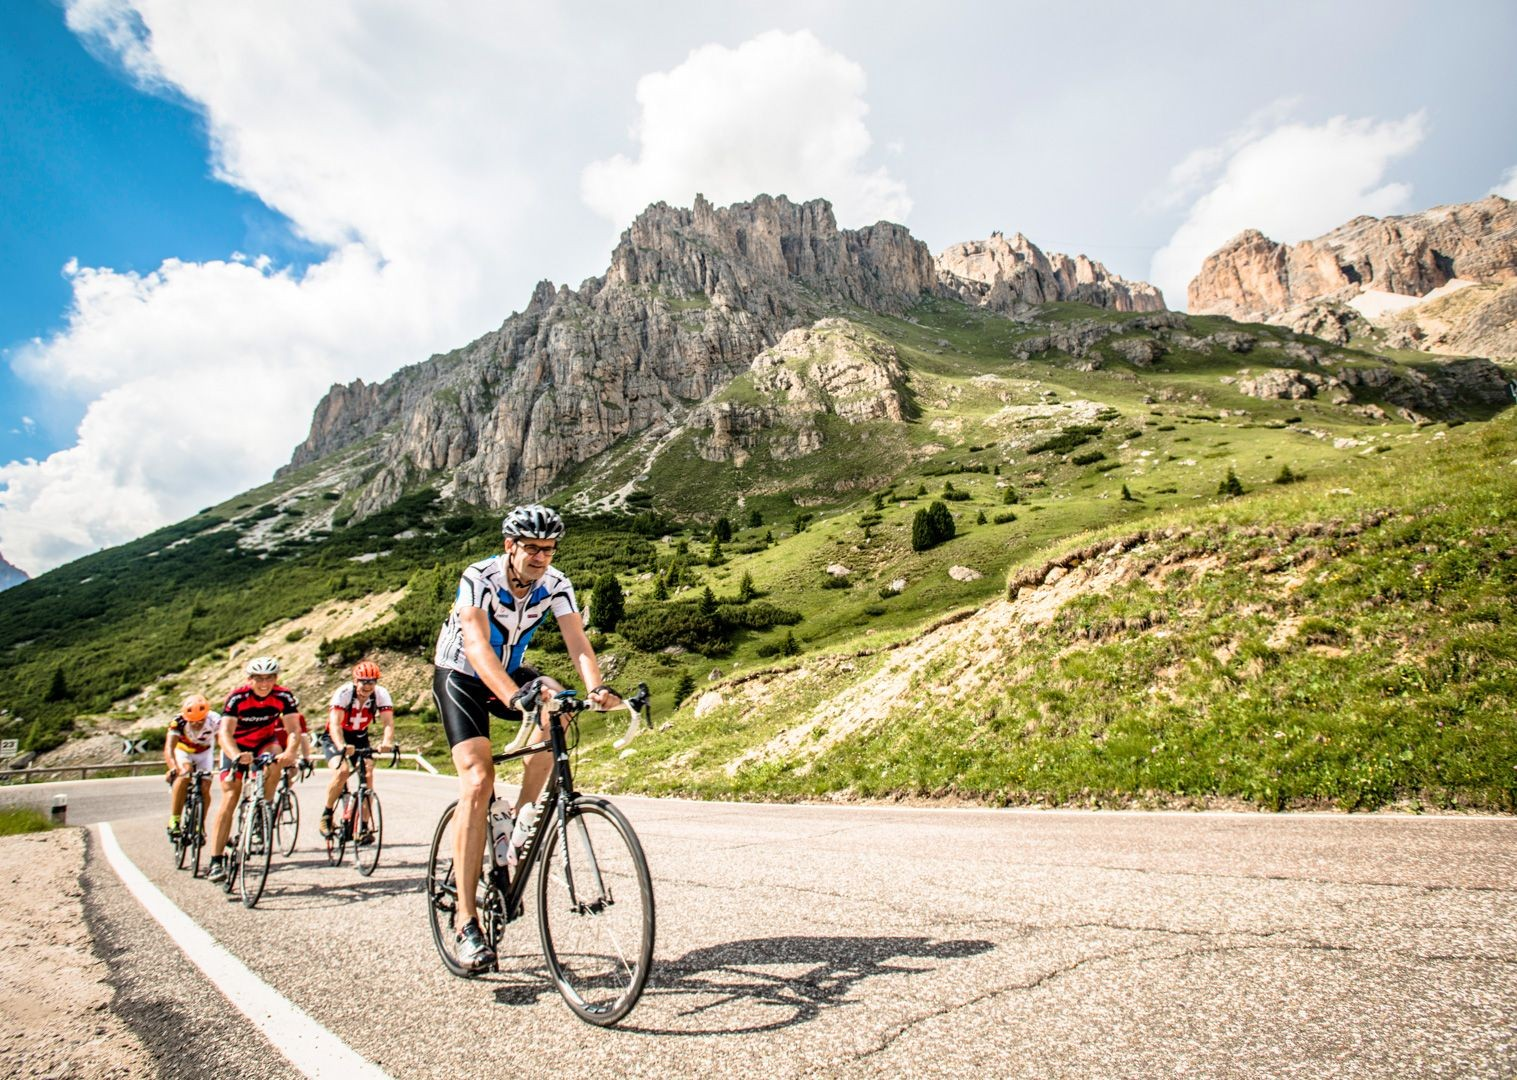 challenging-climbs-italian-dolomites-road-bike-skedaddle.jpg - Italy - Italian Dolomites - Guided Road Cycling Holiday - Italia Road Cycling